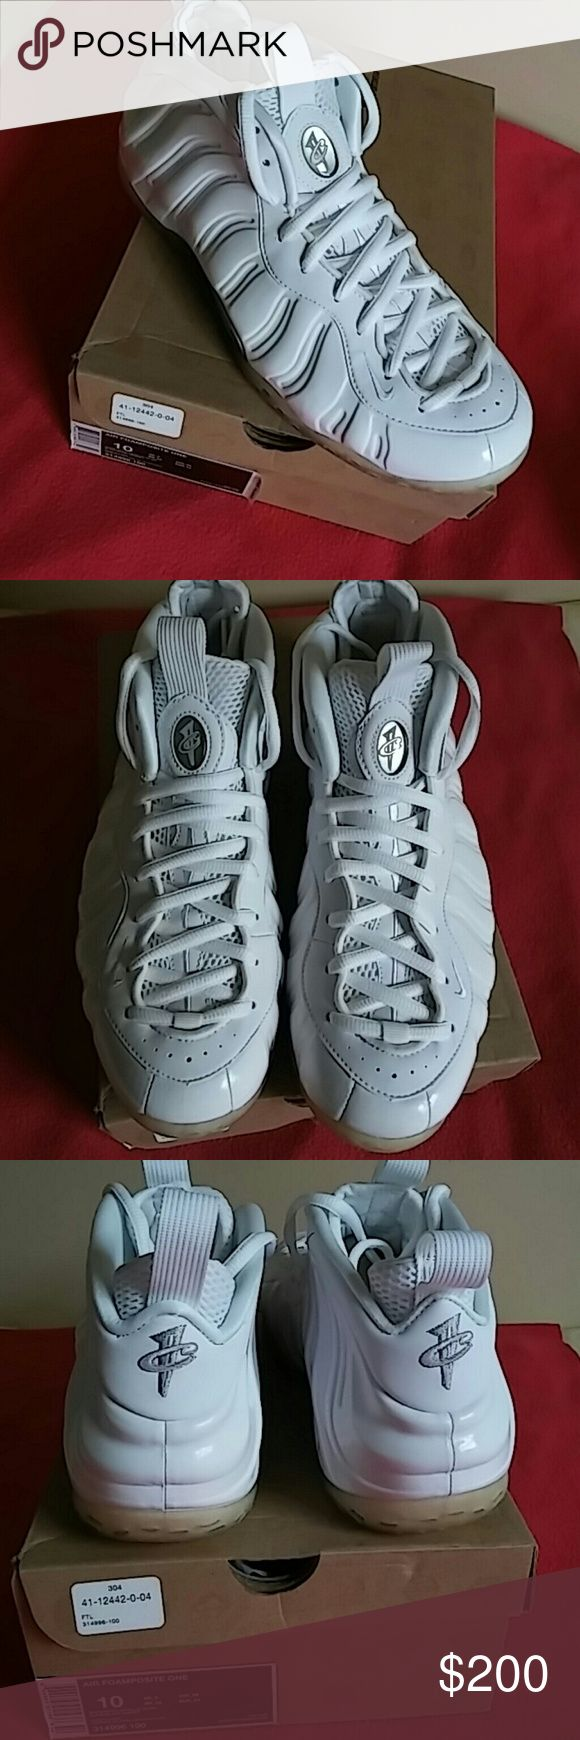 Brand New Deadstock Air Foamposite One Wht Met Slv Brand New DEADSTOCK AIR FOAMPOSITE ONE...White Metallic Silver Size 10... Deadstock!!!. Color is all White..beautiful clear bright white with metallic silver and black at the sides and bottom... Retail for $260...Price is a steal!! Nike Shoes Sneakers